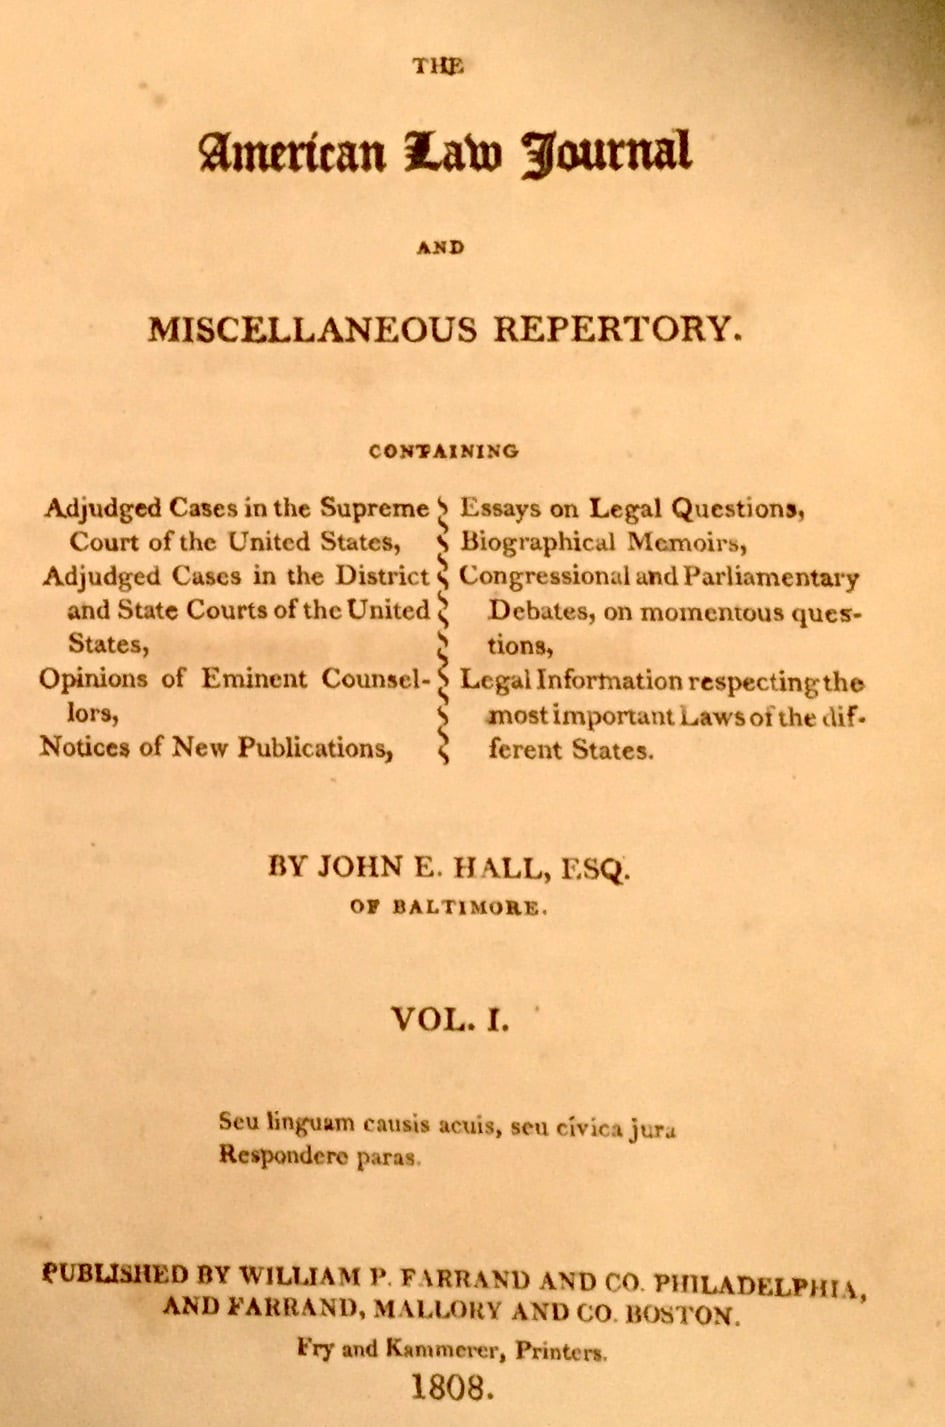 American Law Journal and Miscellaneous Repertory